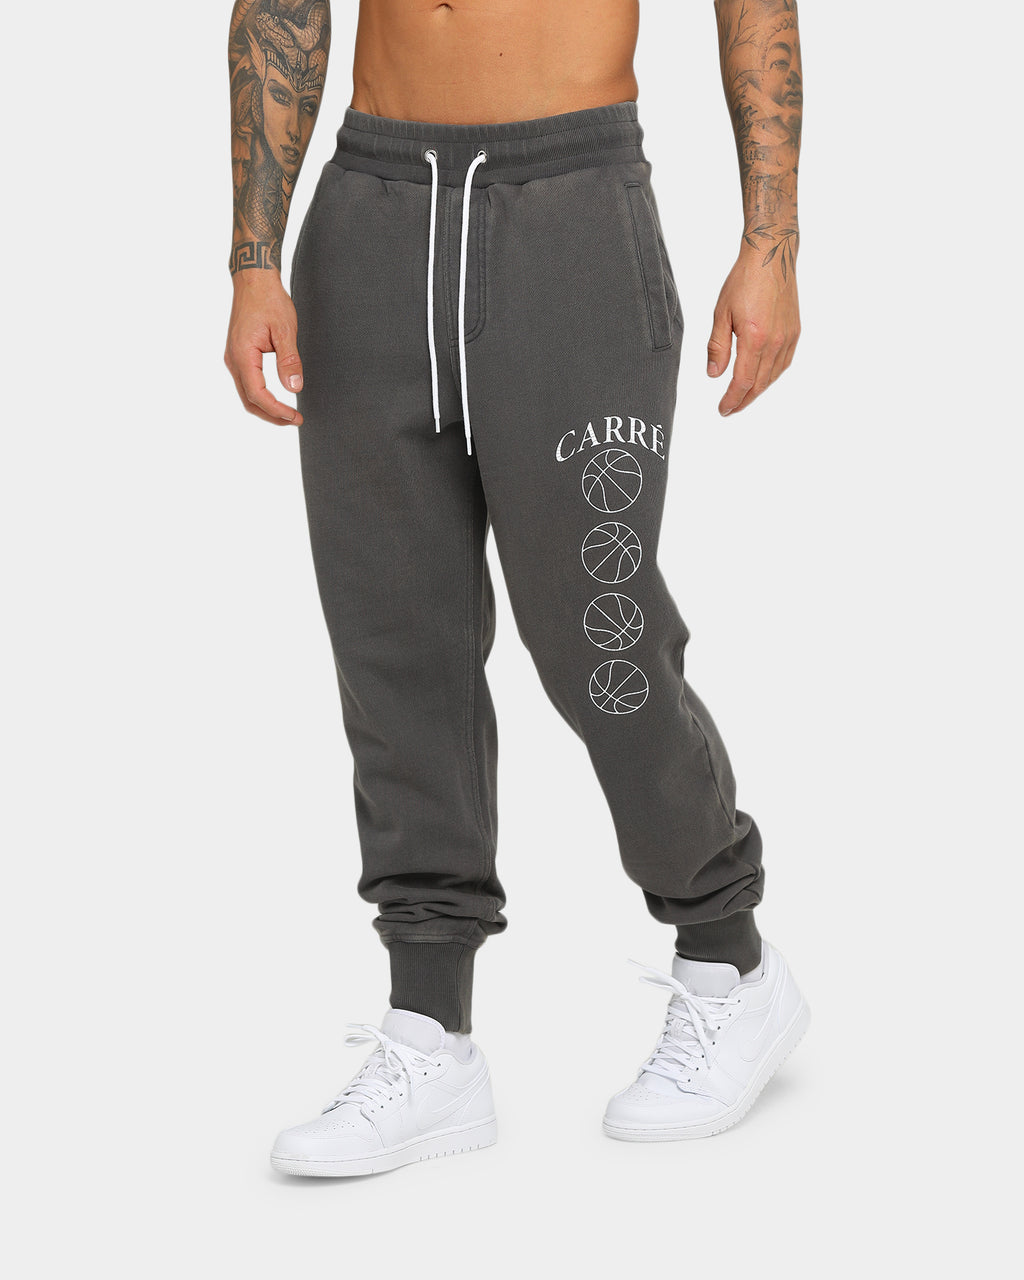 Carré Hoop Dreams Trackpant Grey/White